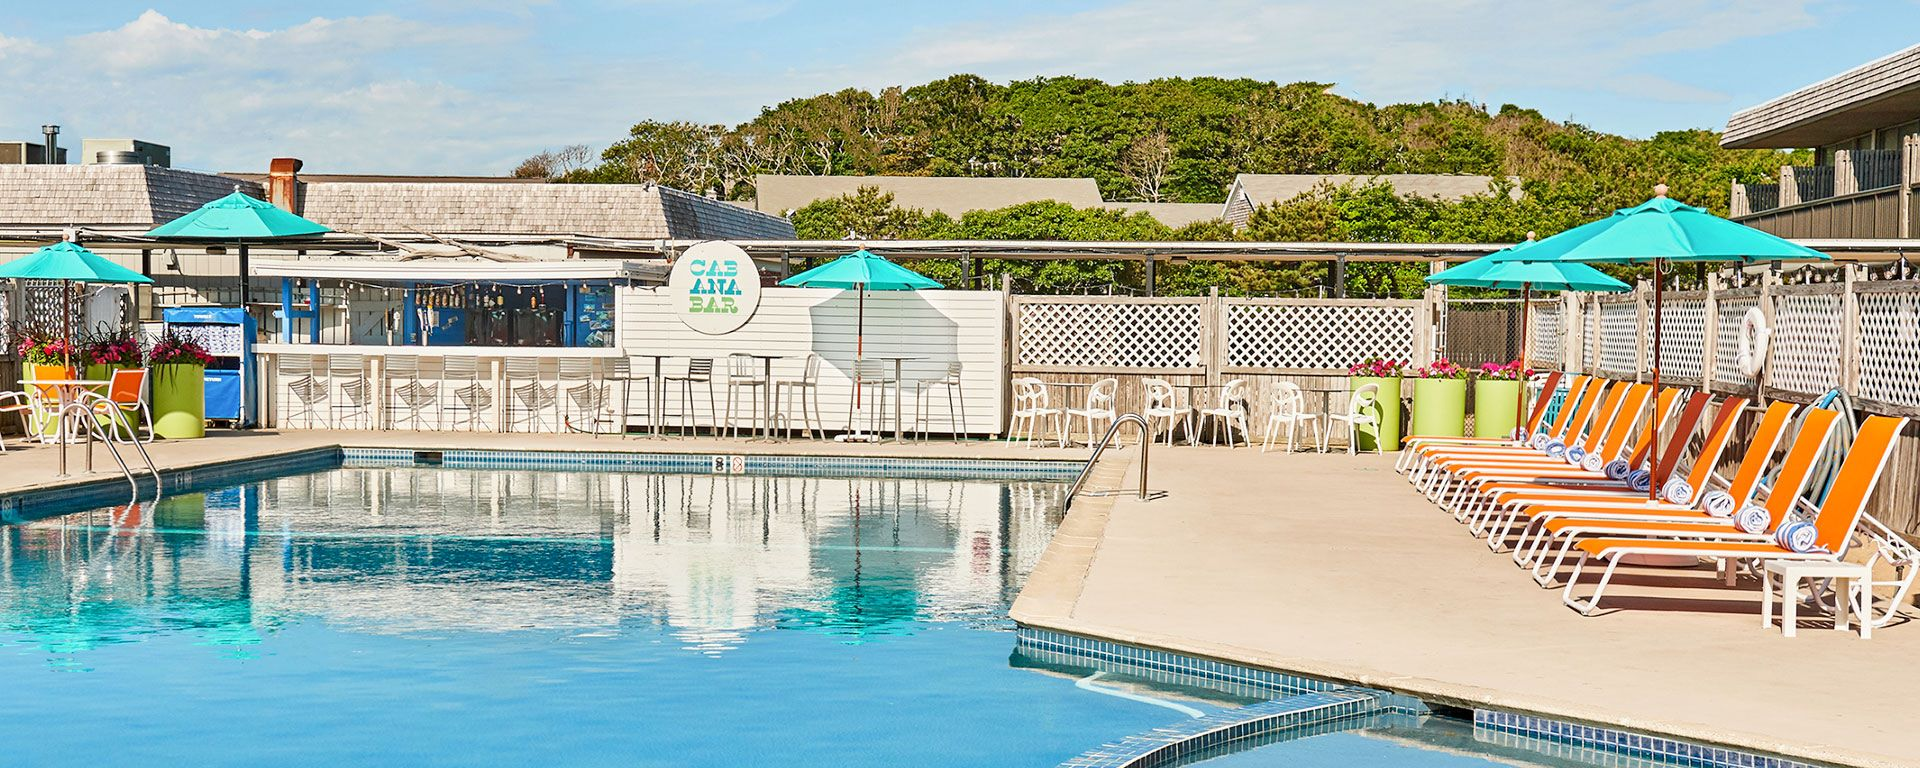 The Cabana Bar & Grill at Harbor Hotel Provincetown